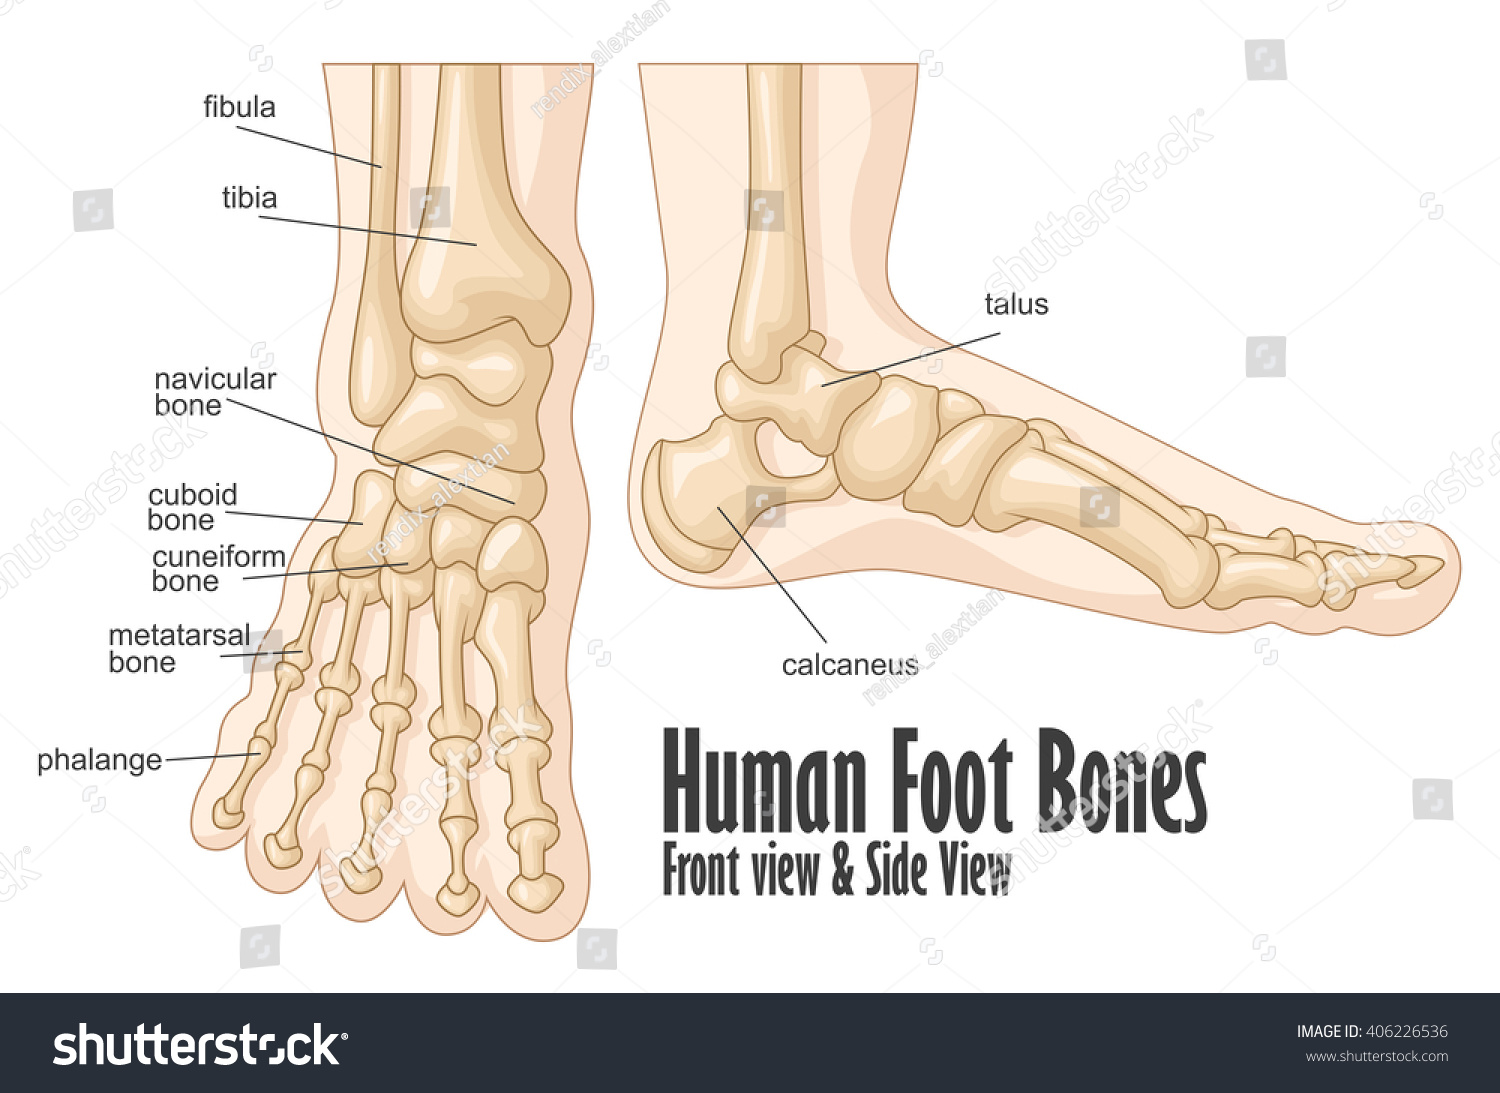 Human Foot Bones Front Side View Stock Illustration 406226536